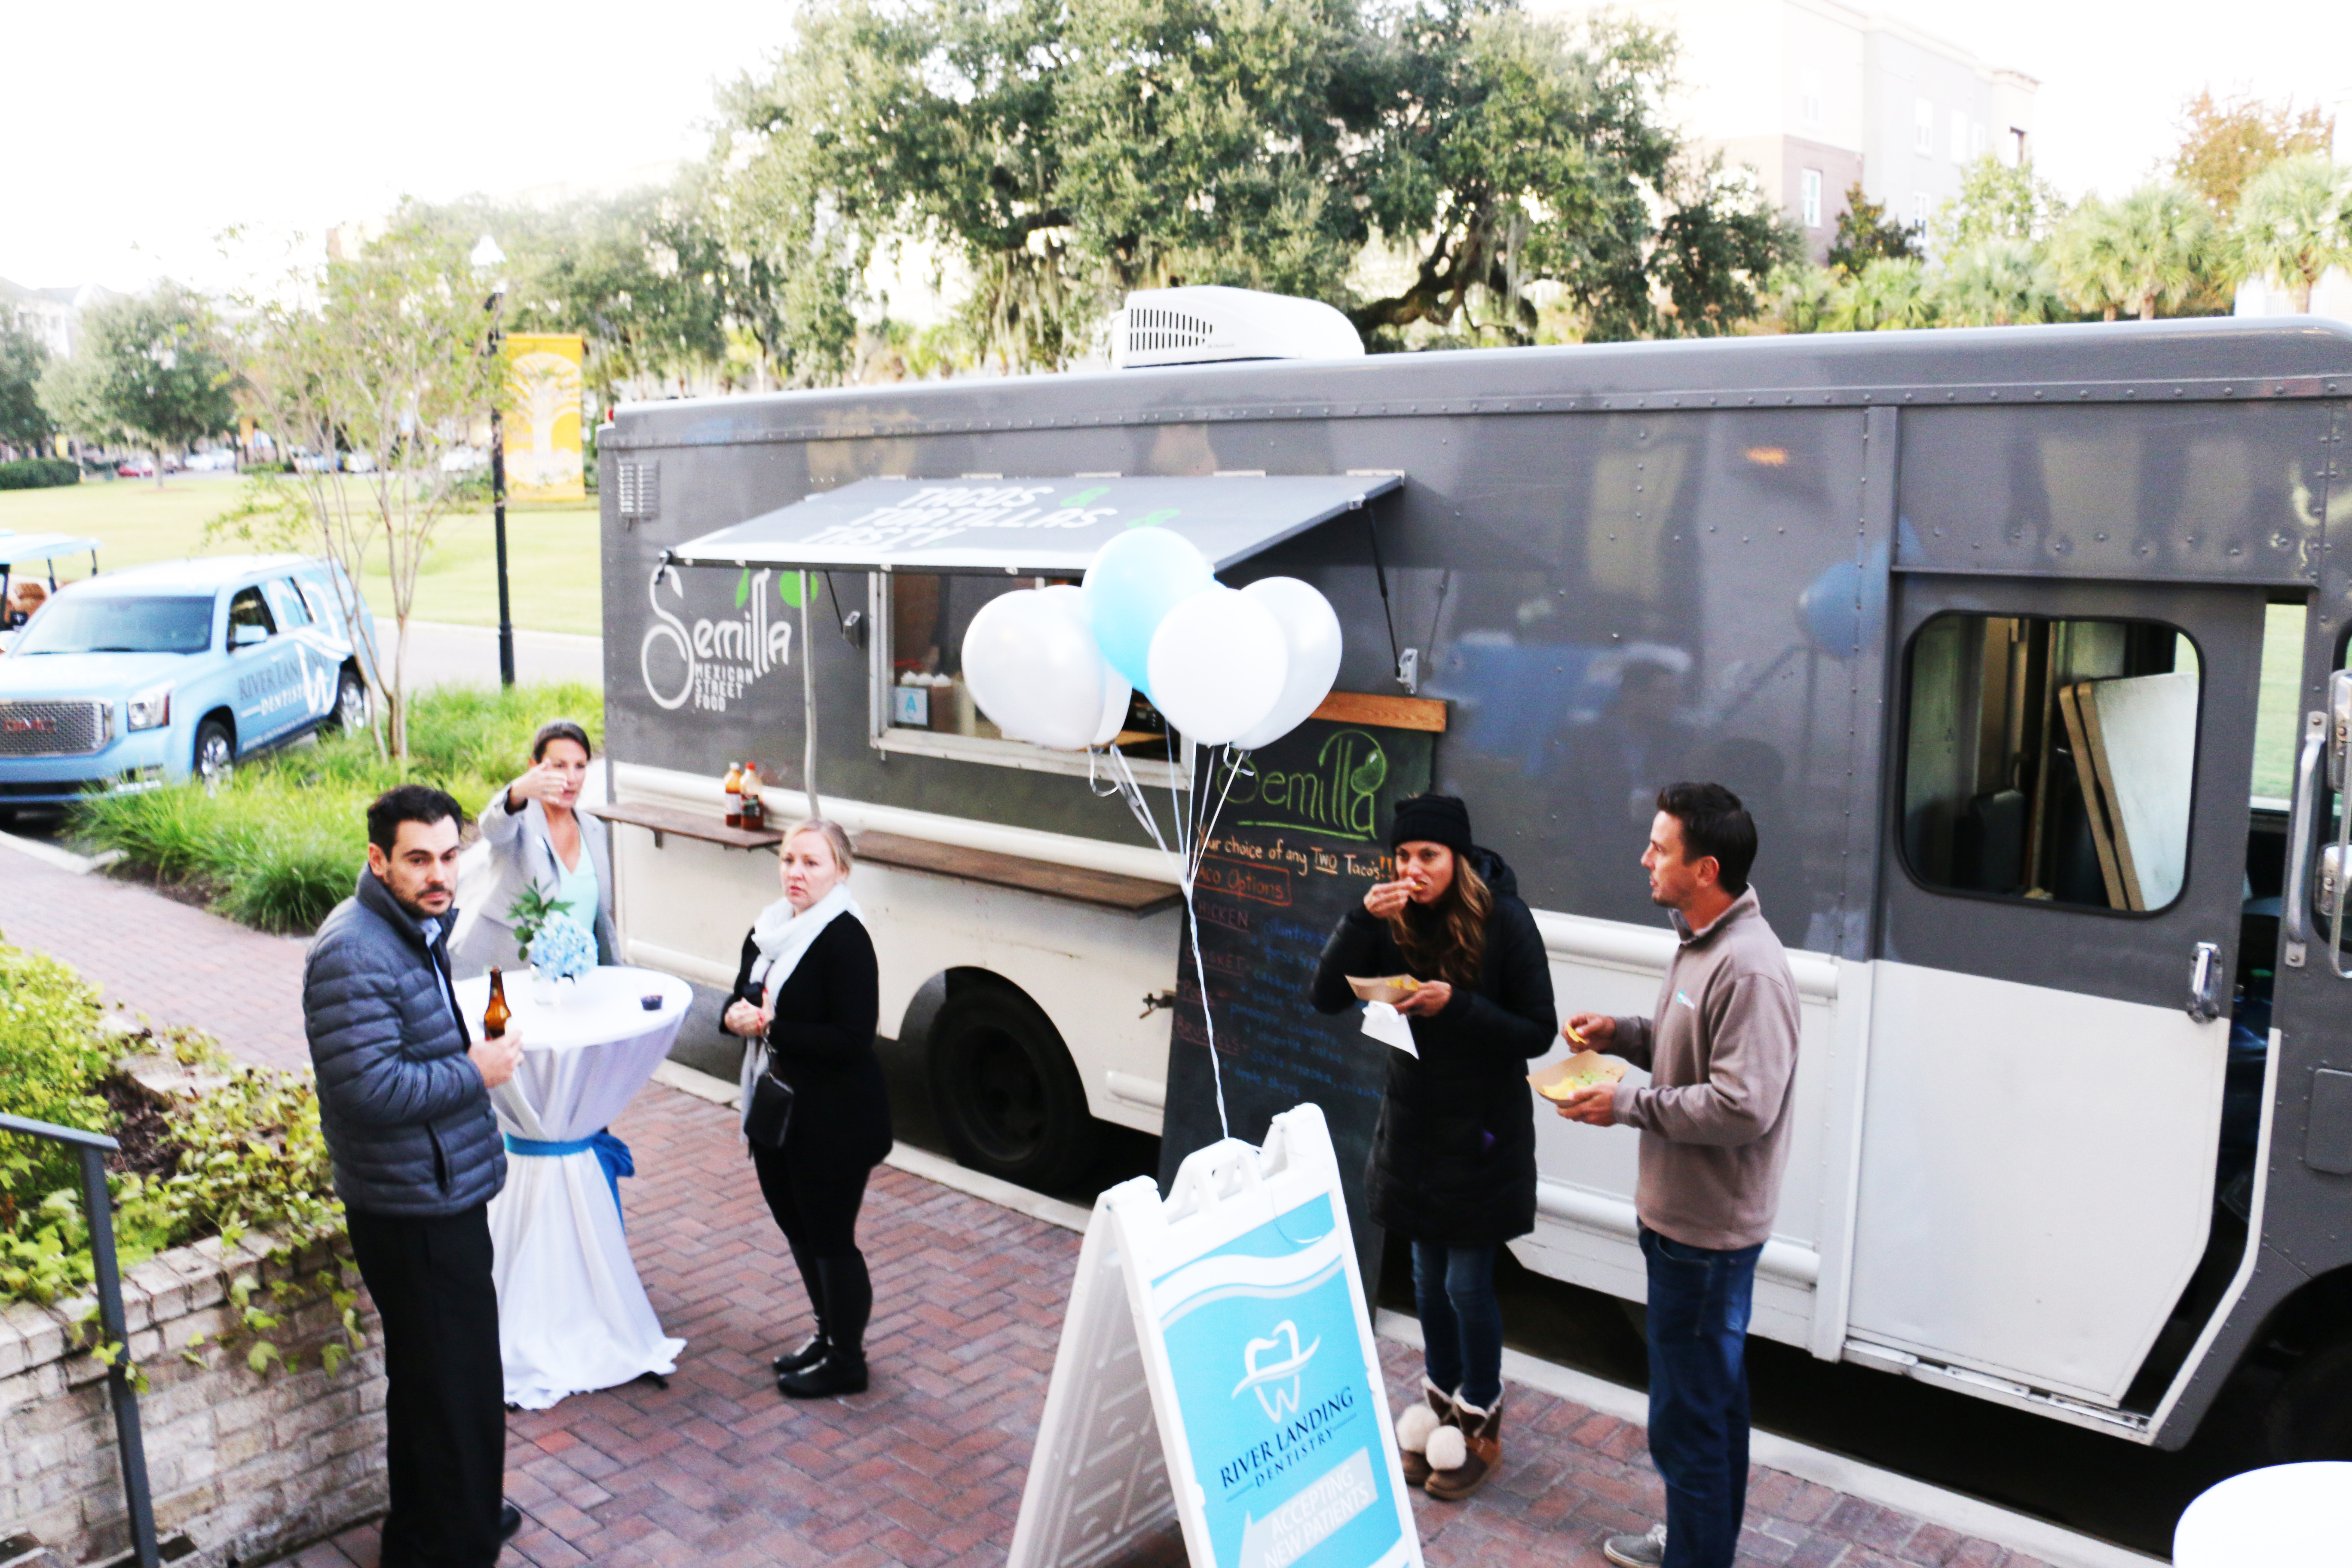 River Landing Dentistry entertained guests during an event last week with a food truck, lobster rolls, drinks, and music.